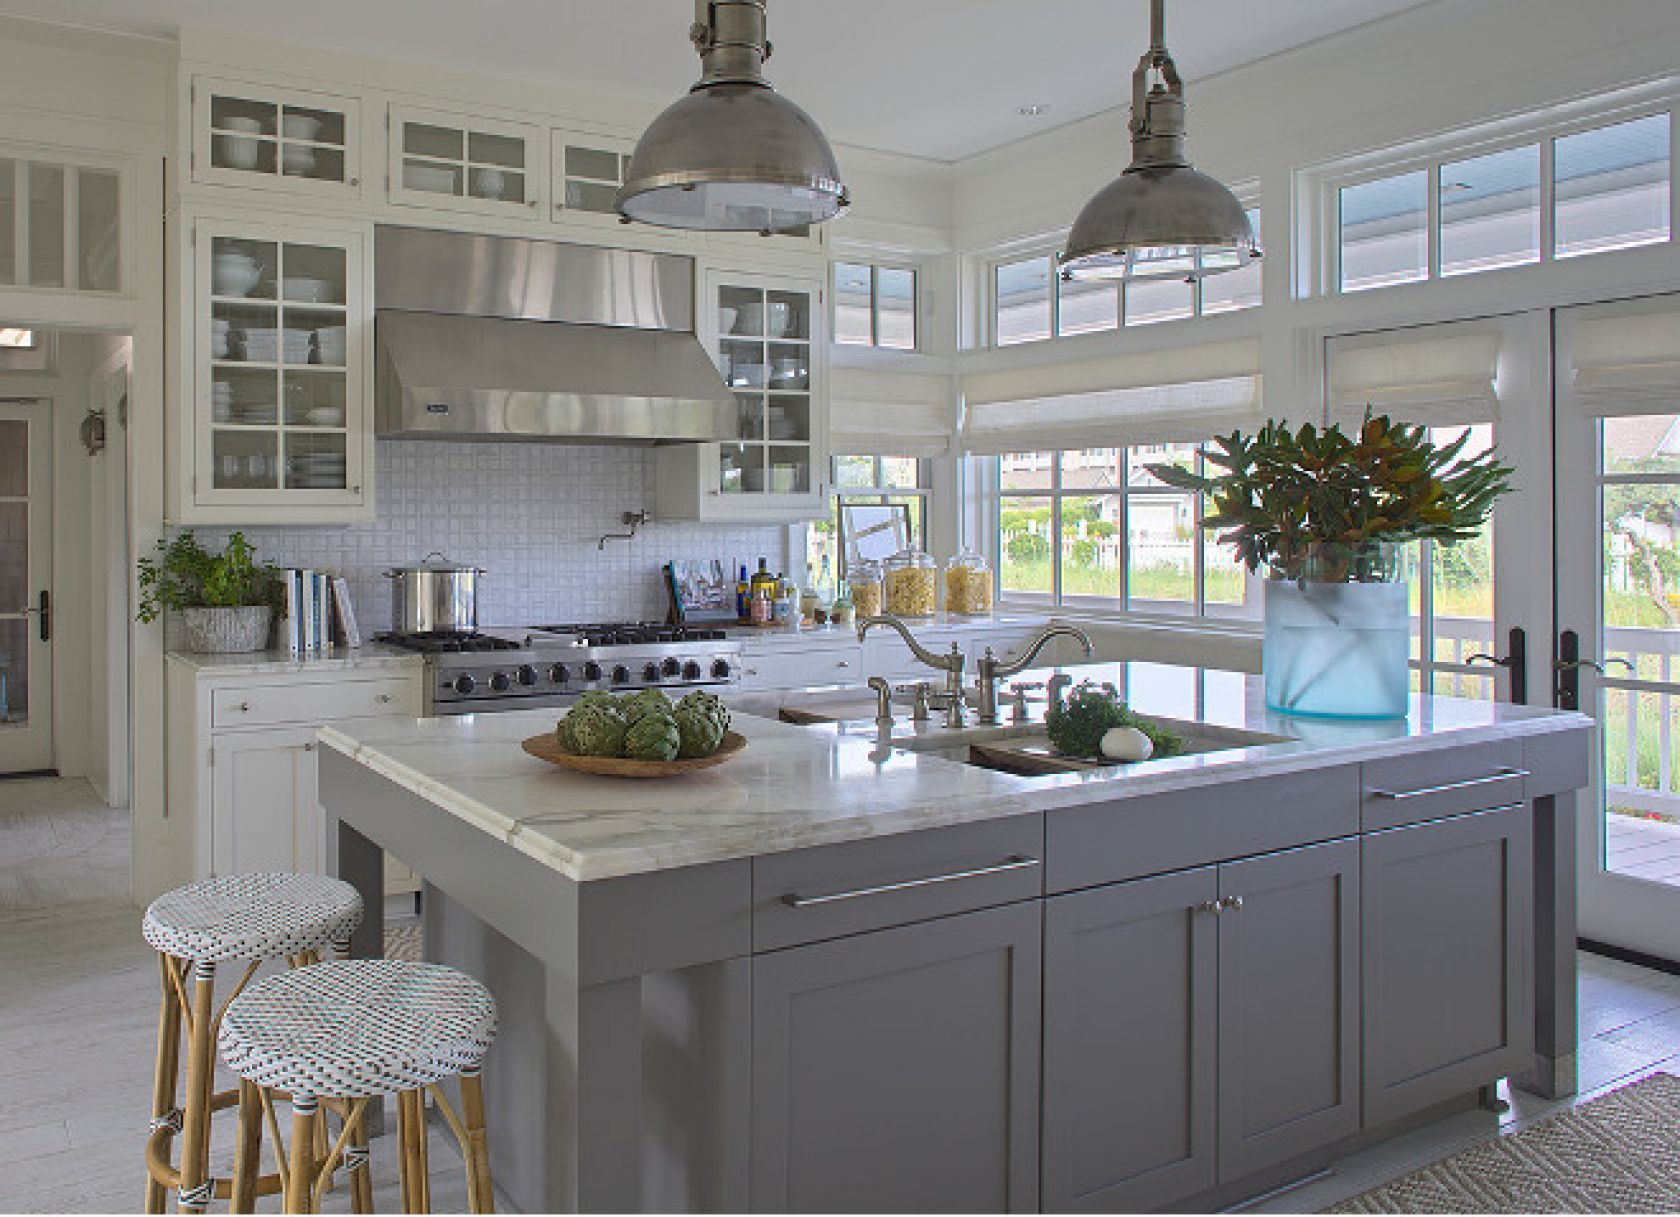 Coastal kitchen with cargo ship lights over the island. | Kitchen ...